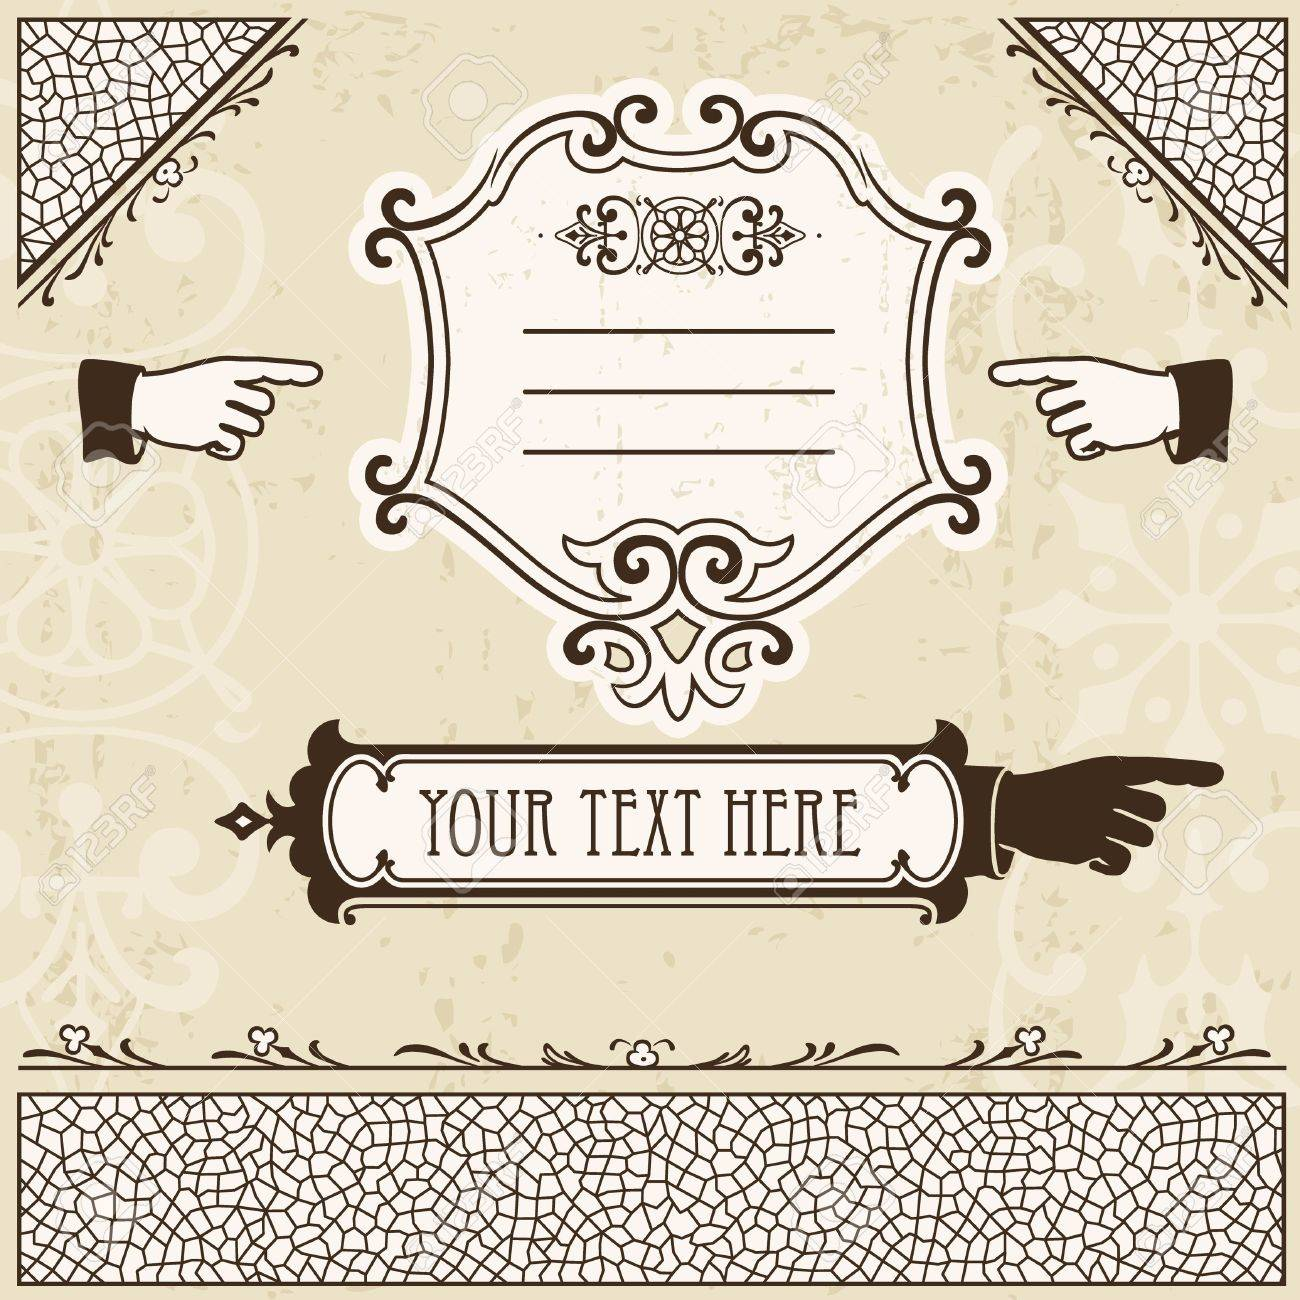 Vintage design elements with hands and other page decoration. - 12104093